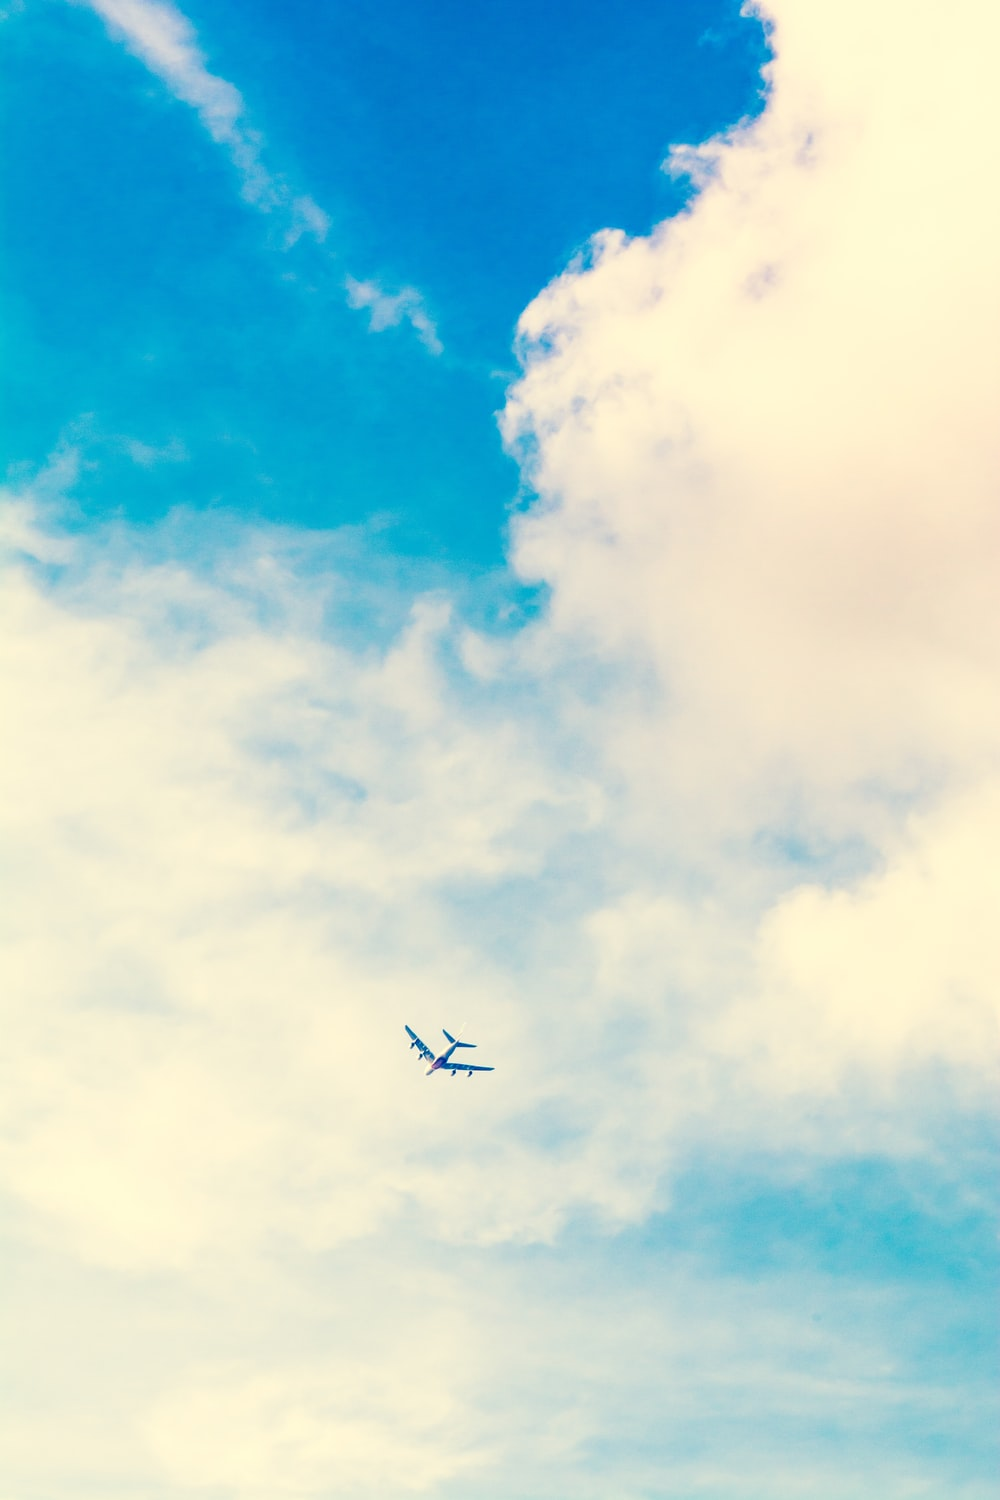 low angle photo of airplane and white clouds during daytime